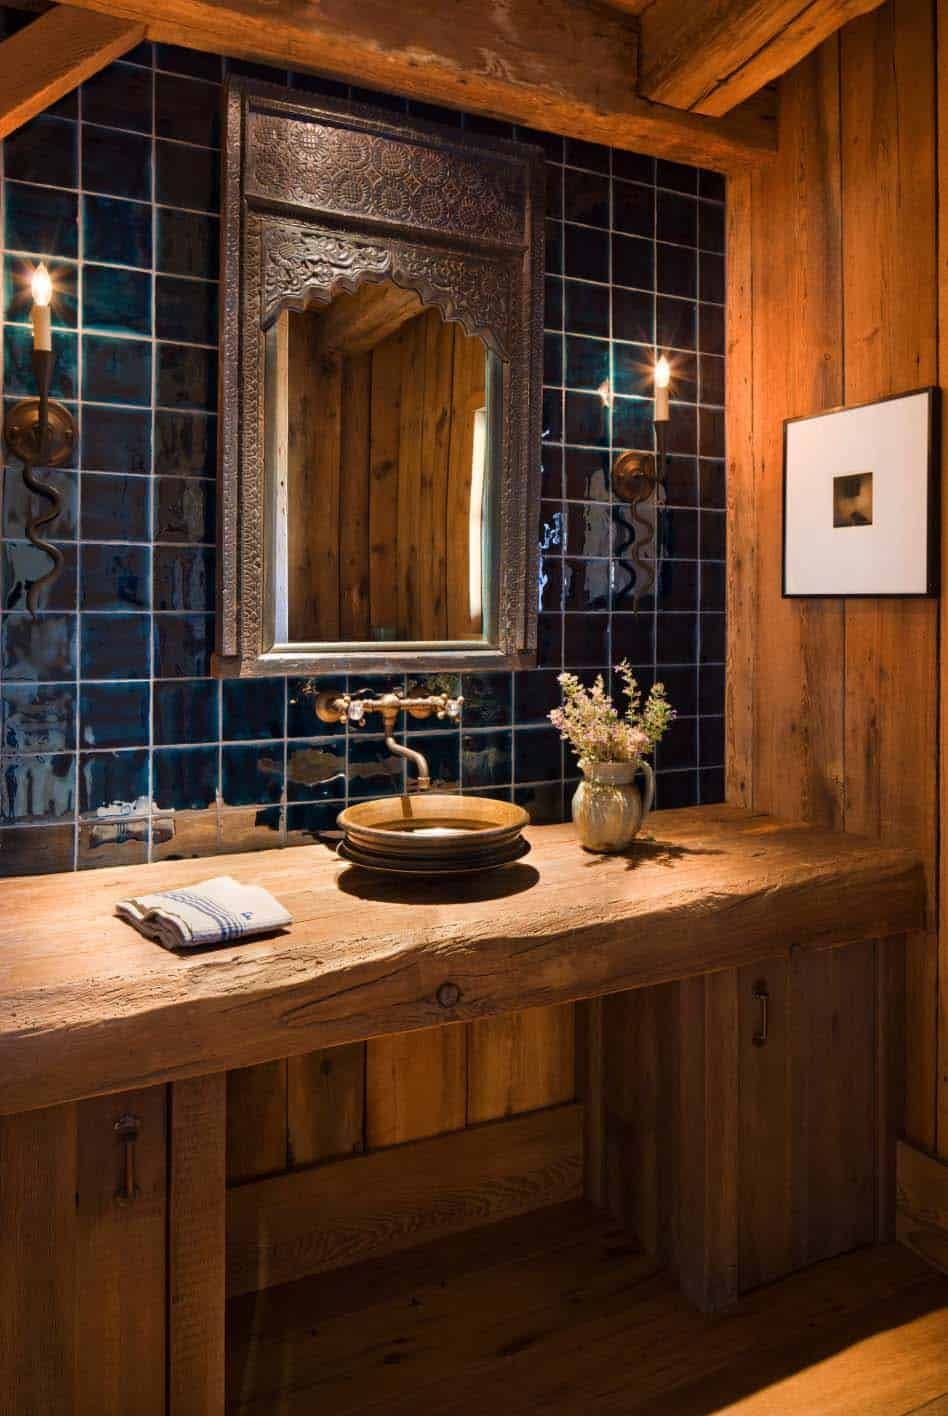 The designers put high emphasis on the pure and authentic character of the materials, the wood in particular